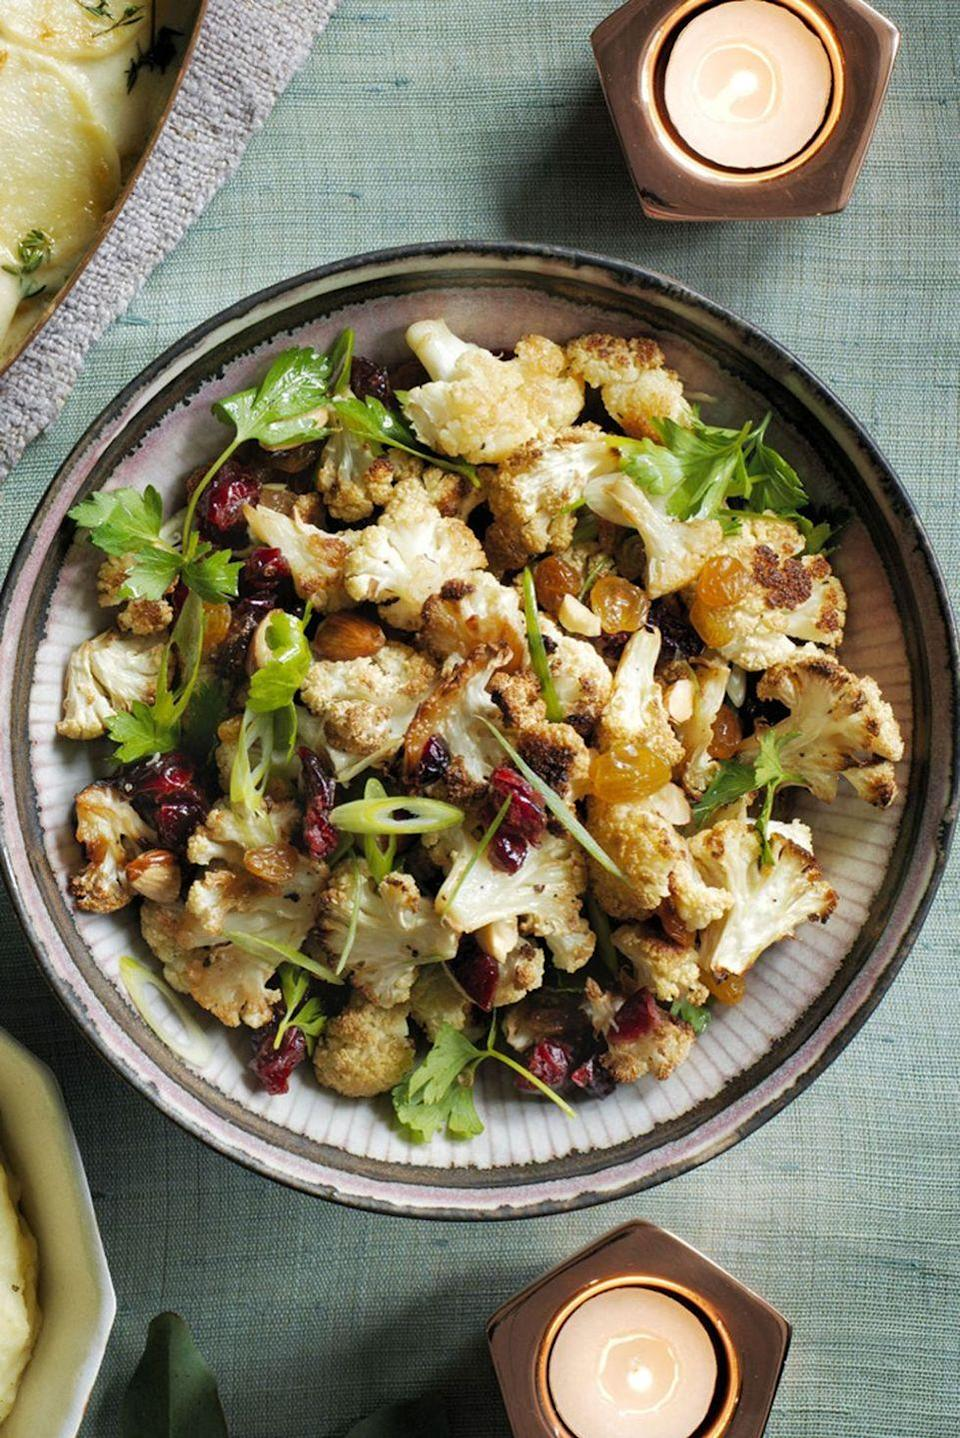 """<p>Move over, boring side salads. This warm and roasty cauliflower dish is hearty, delicious, and best of all — vegan!<br></p><p><em><a href=""""https://www.womansday.com/food-recipes/food-drinks/recipes/a60491/roasted-cauliflower-salad-recipe/"""" rel=""""nofollow noopener"""" target=""""_blank"""" data-ylk=""""slk:Get the recipe from Woman's Day »"""" class=""""link rapid-noclick-resp"""">Get the recipe from Woman's Day »</a></em></p><p><strong>RELATED: </strong><a href=""""https://www.goodhousekeeping.com/food-recipes/g3165/cauliflower-recipes/"""" rel=""""nofollow noopener"""" target=""""_blank"""" data-ylk=""""slk:30 Crazy-Delicious Cauliflower Recipes to Instantly Upgrade Your Veggie Game"""" class=""""link rapid-noclick-resp"""">30 Crazy-Delicious Cauliflower Recipes to Instantly Upgrade Your Veggie Game</a></p>"""